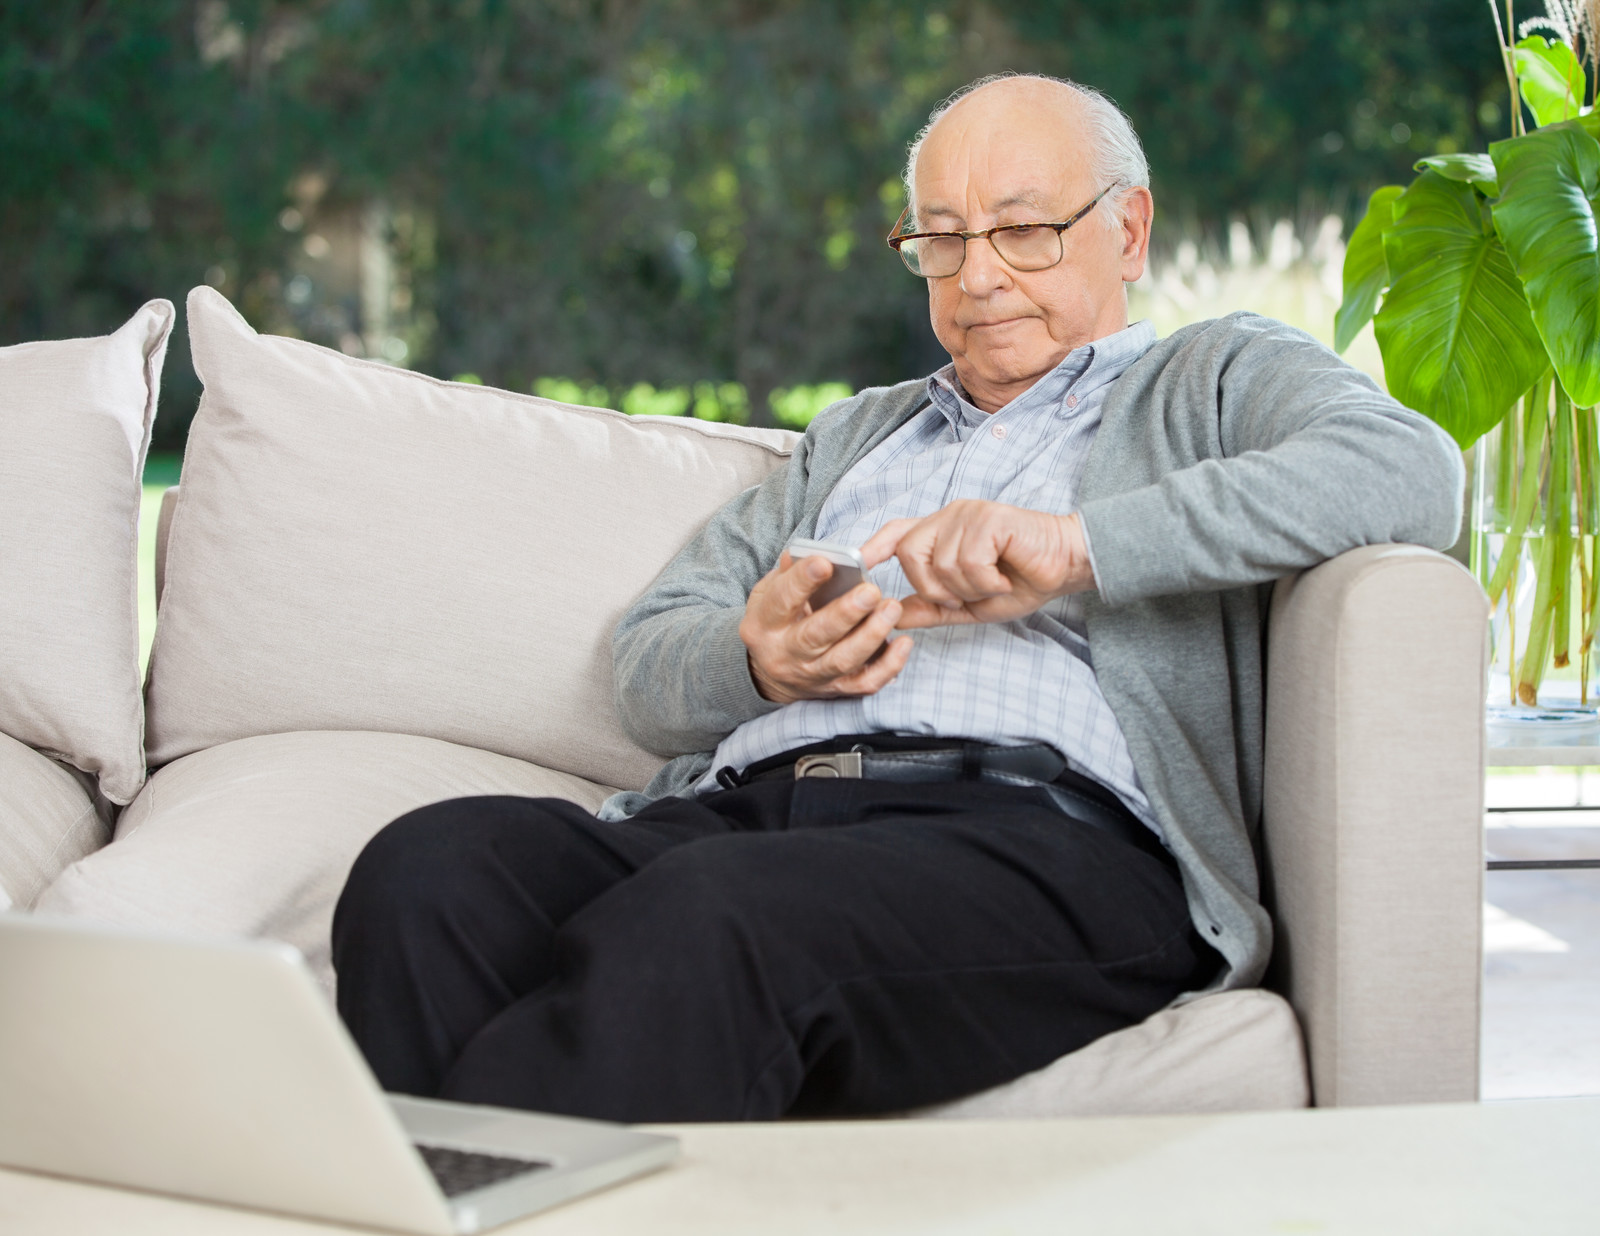 senior man sitting on a an offwhite couch texting on his smart phone